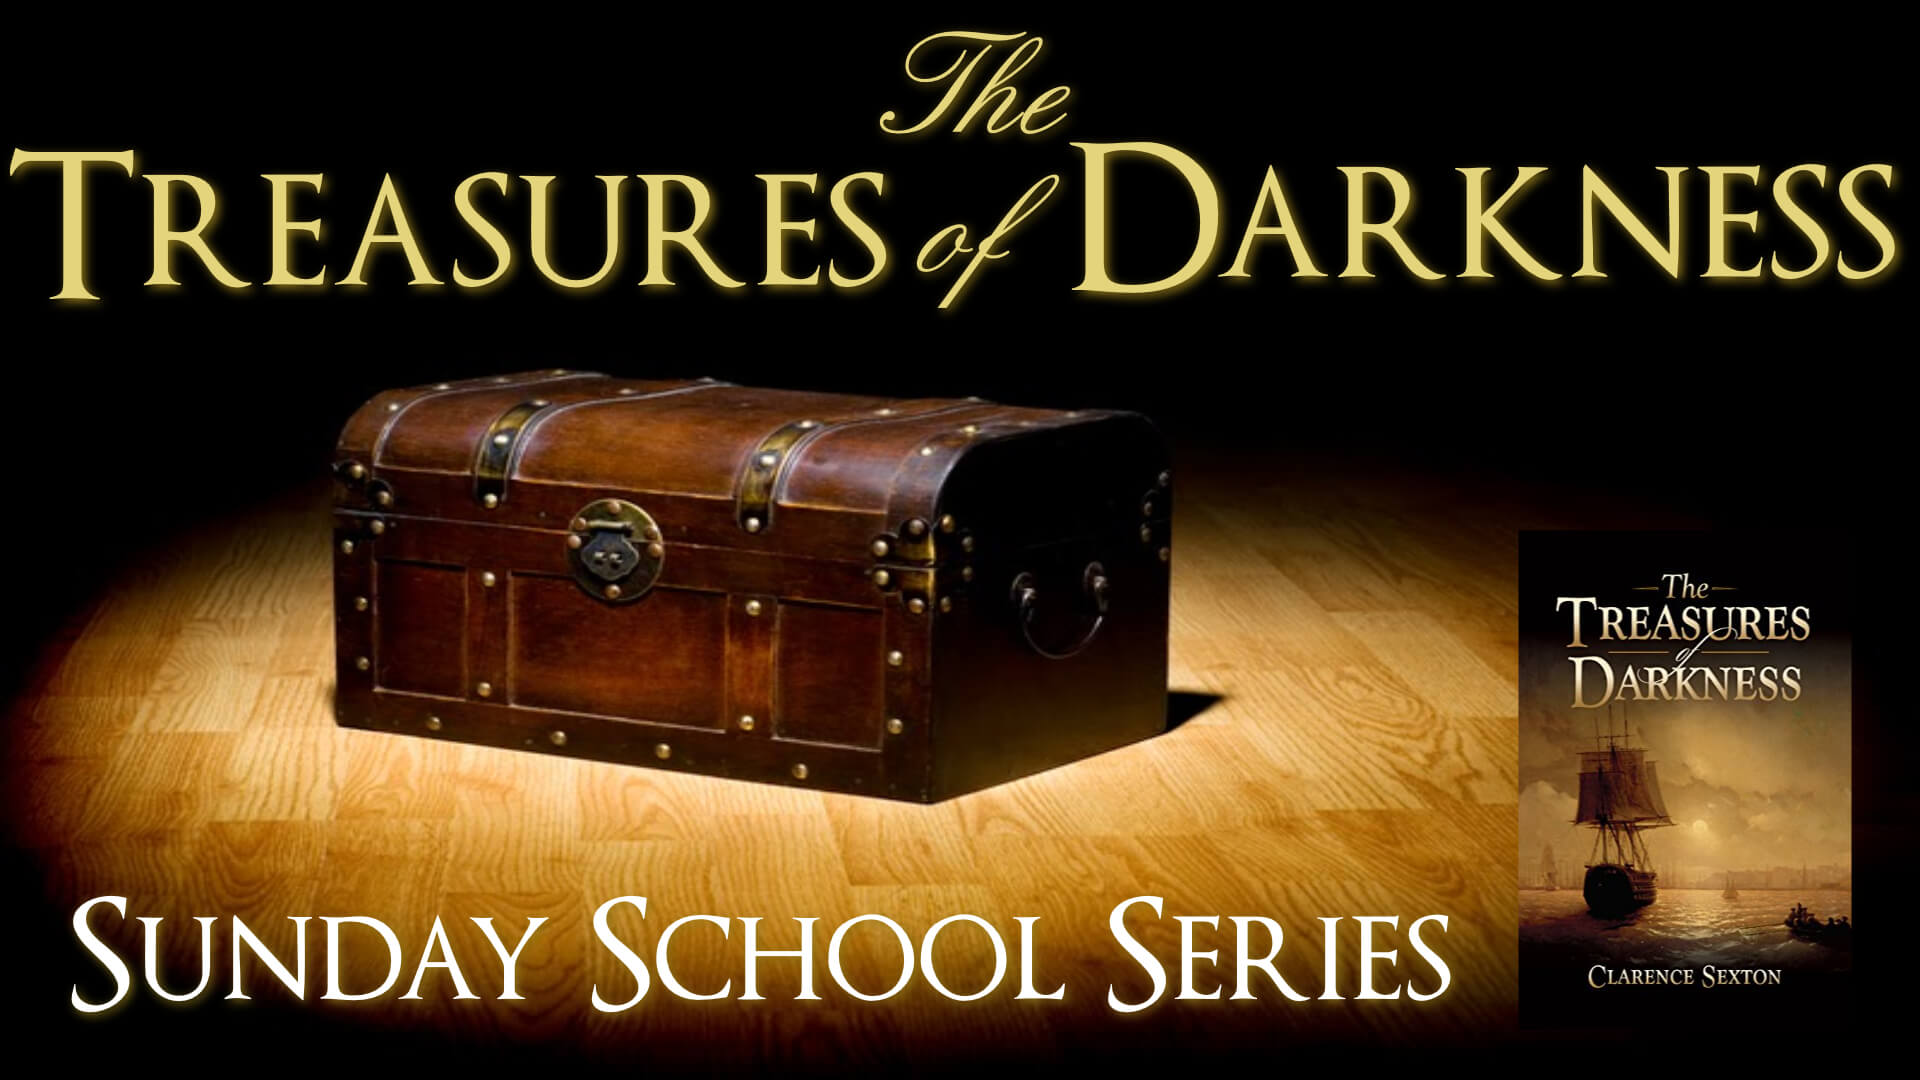 The Treasures of Darkness